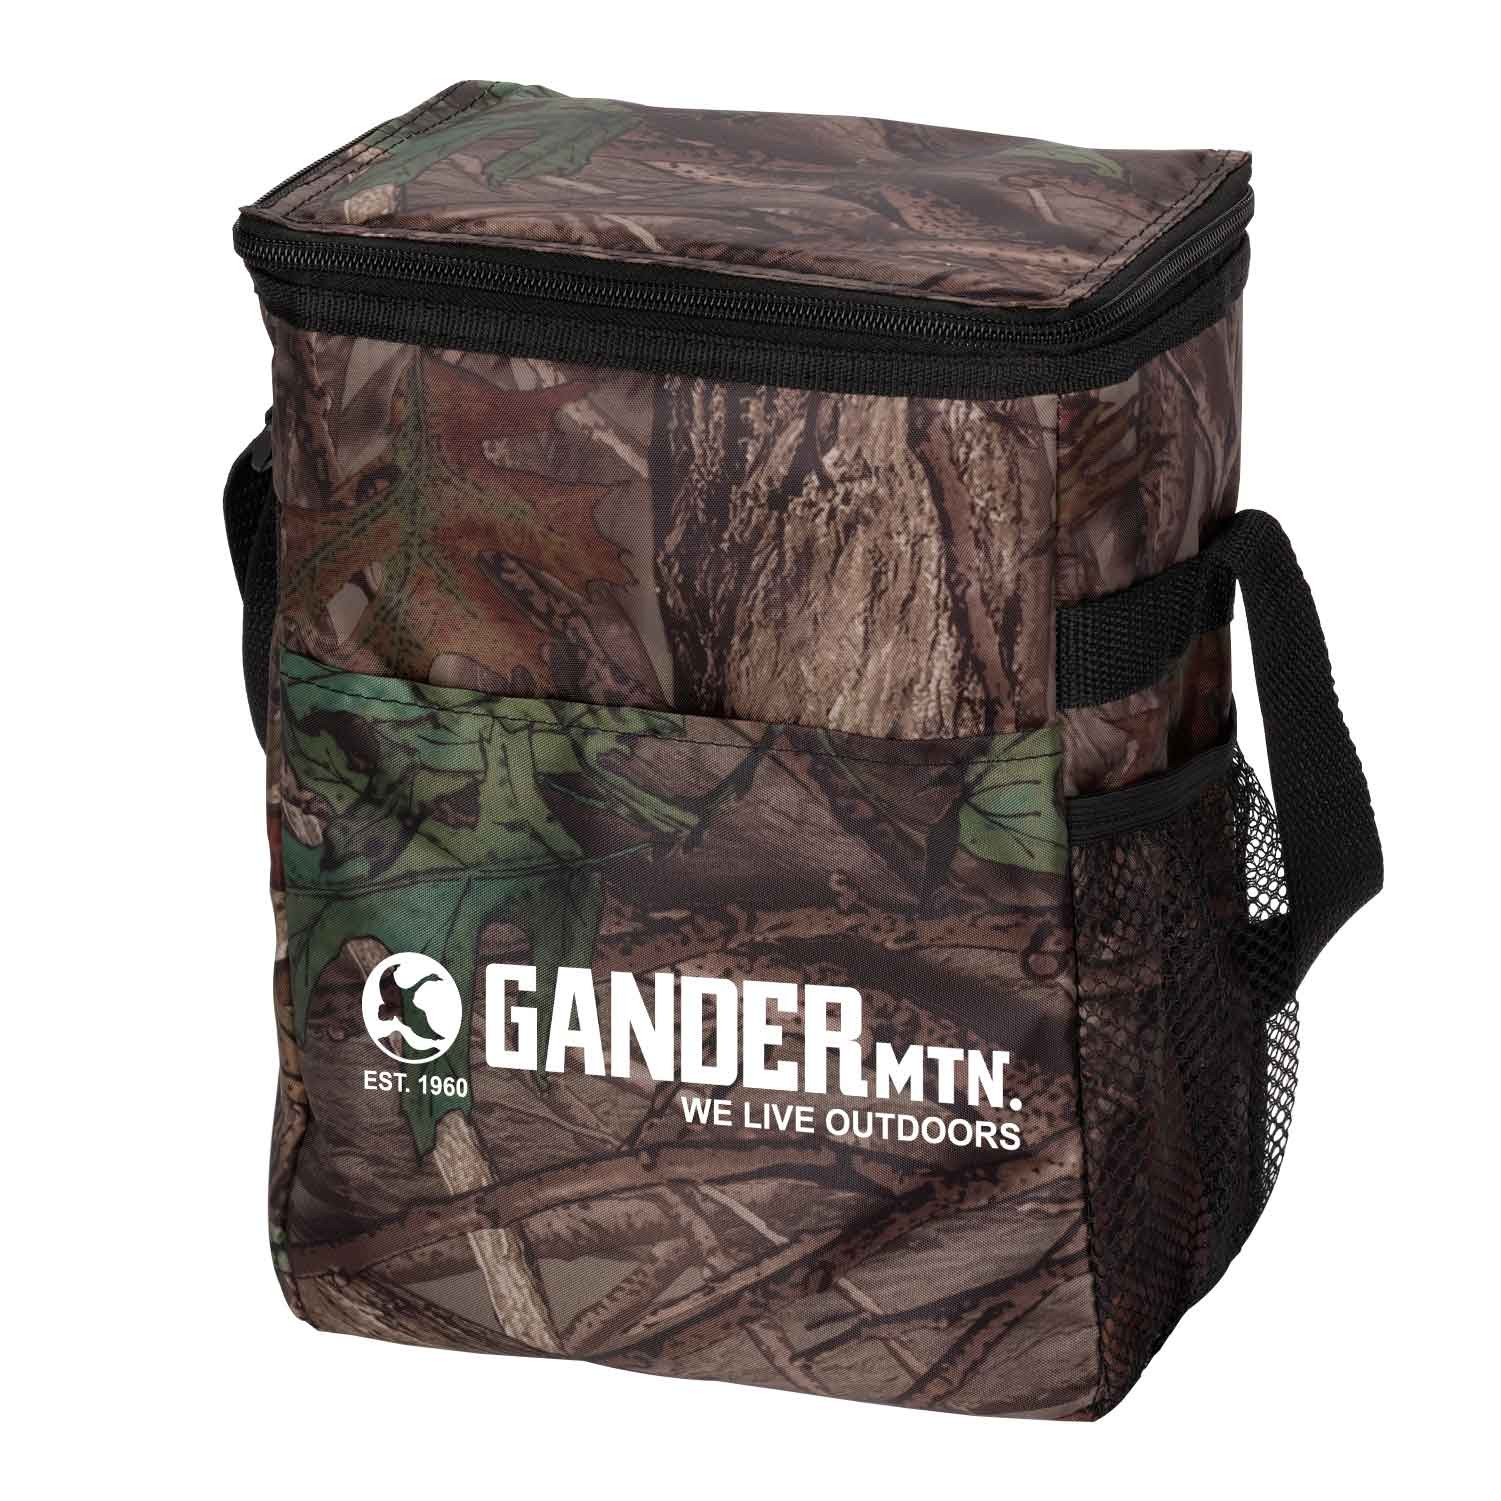 Outdoor Camo 12-Pack Cooler